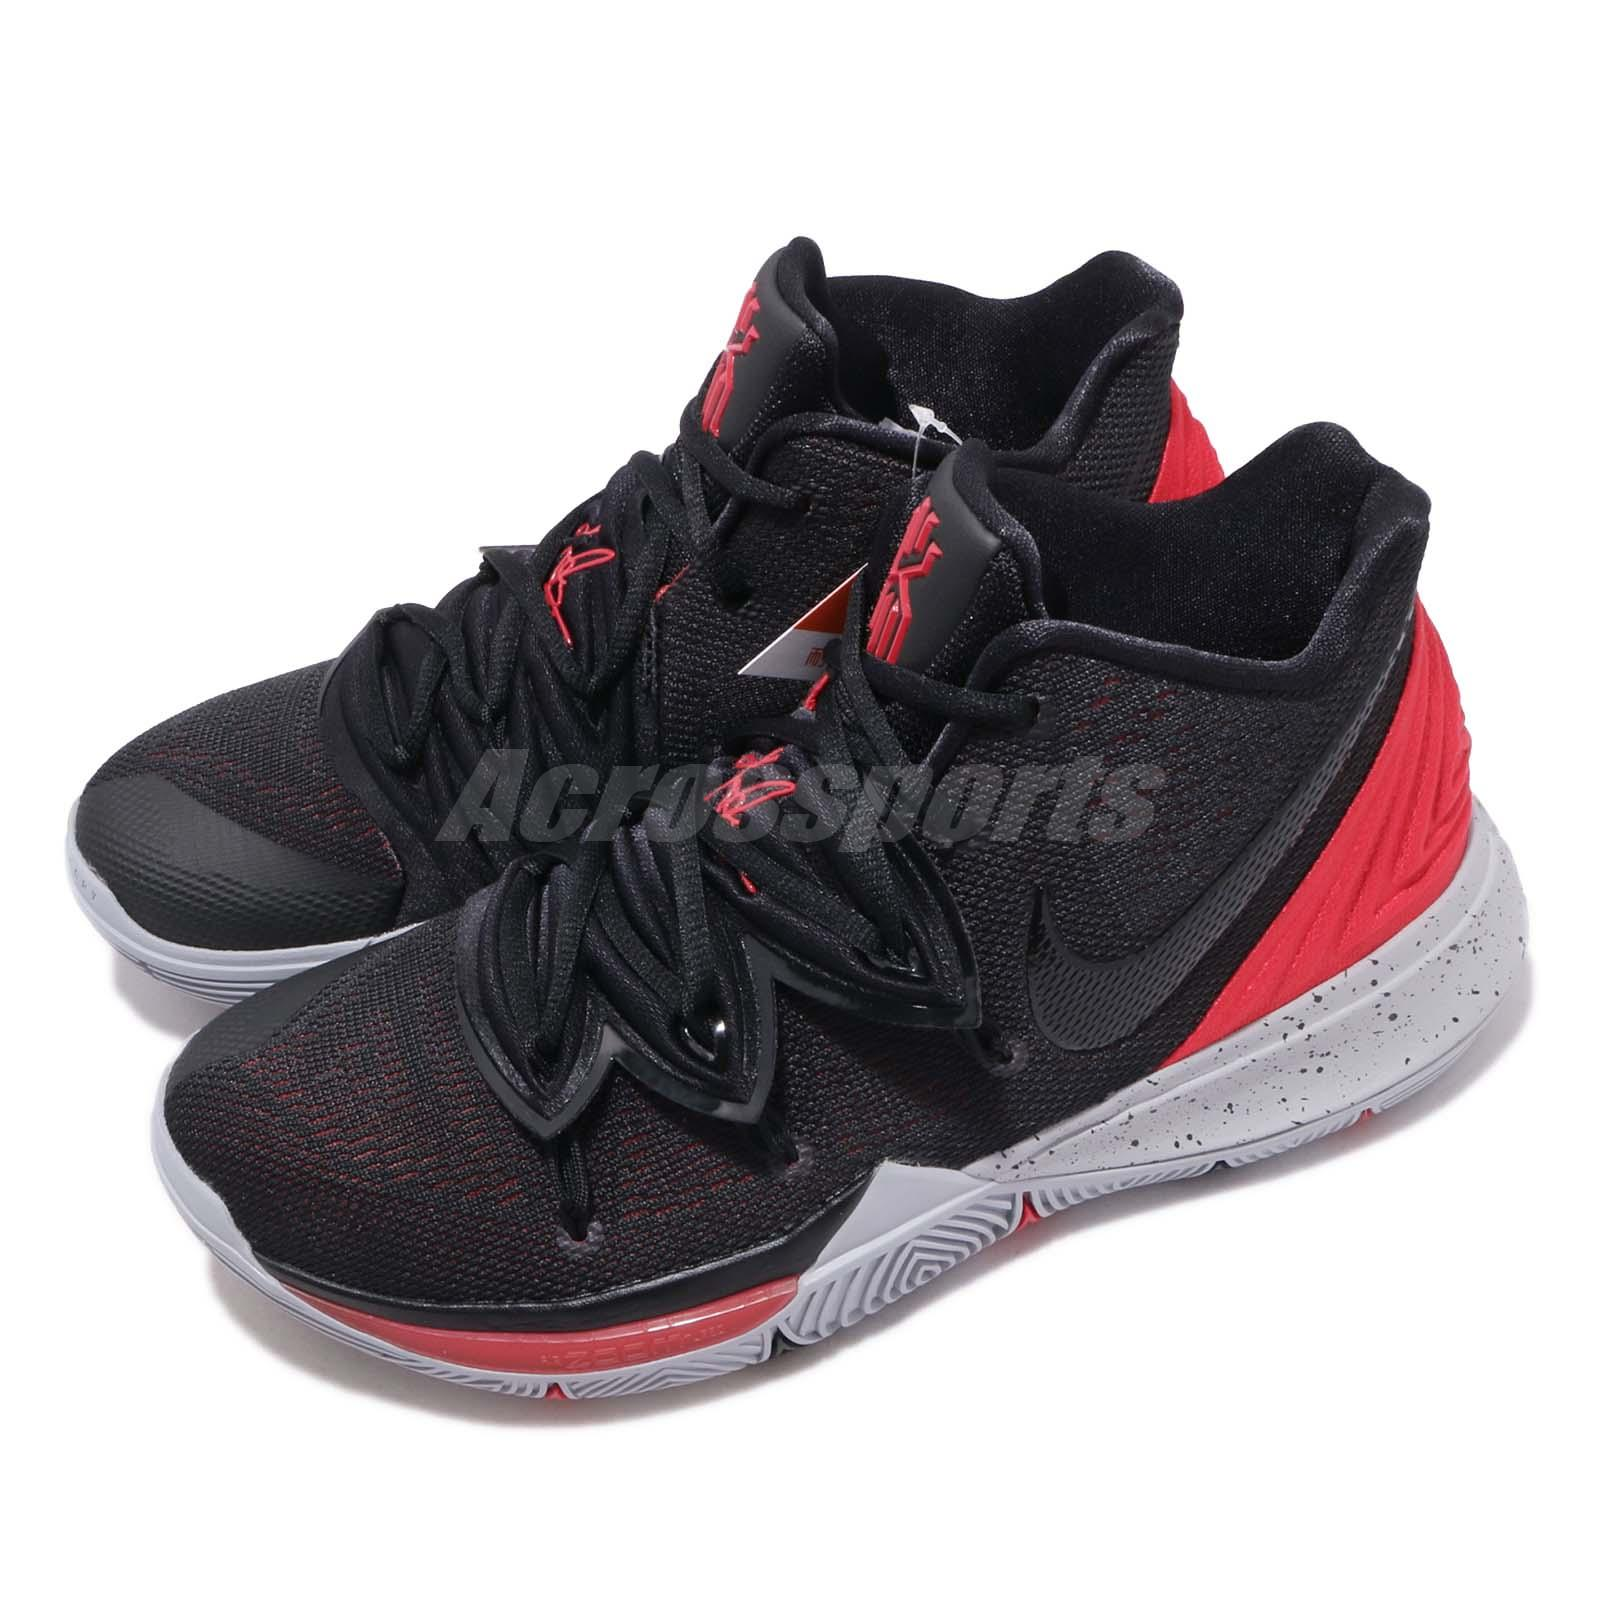 detailed look 90f41 a0d45 Details about Nike Kyrie 5 EP Irving University Red Black Bred Men  Basketball Shoes AO2919-600